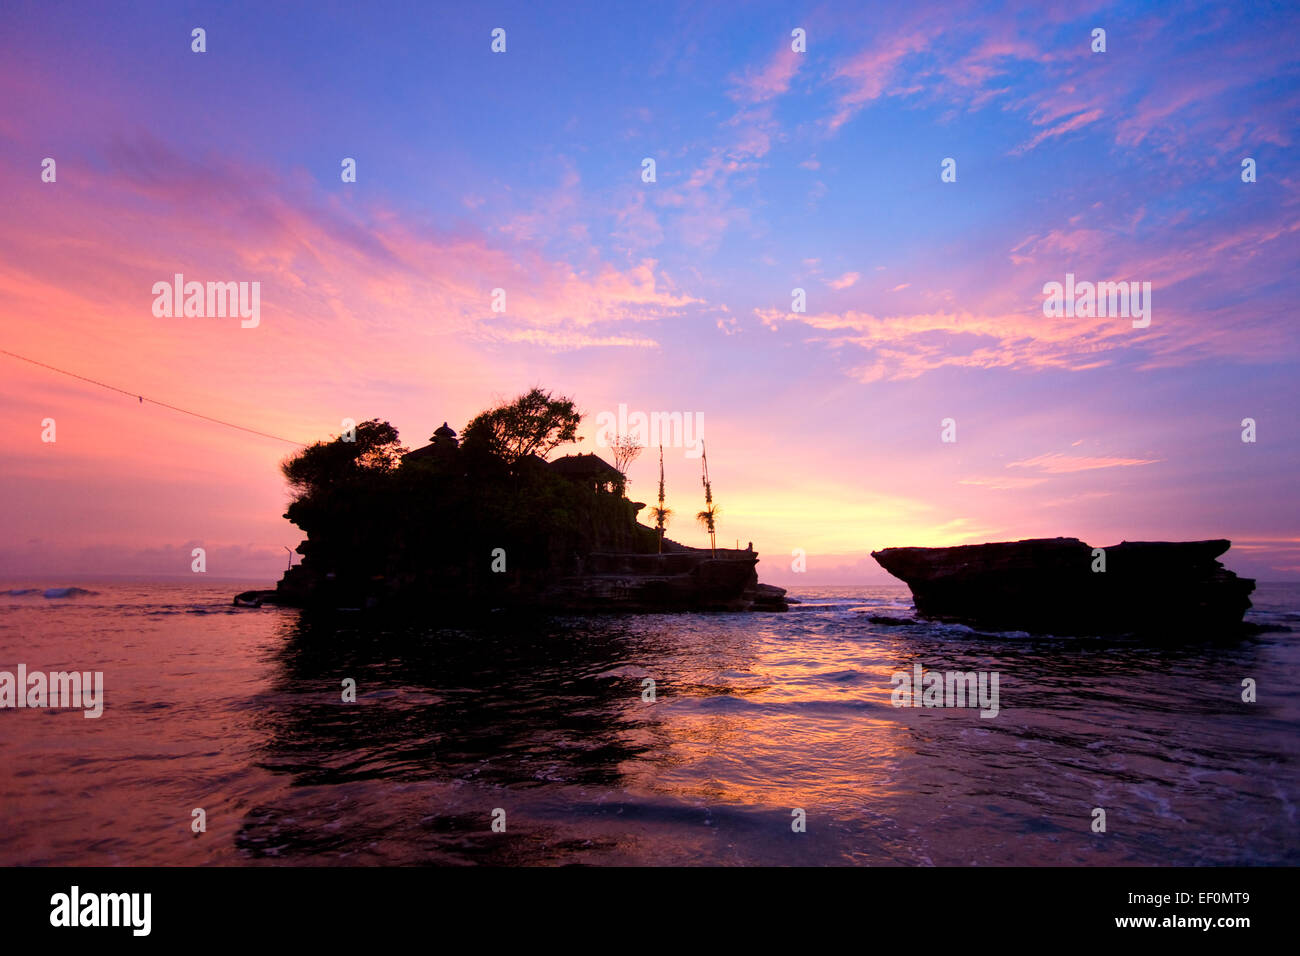 The Tanah Lot Temple at sunset, the most important indu temple of Bali, Indonesia. - Stock Image